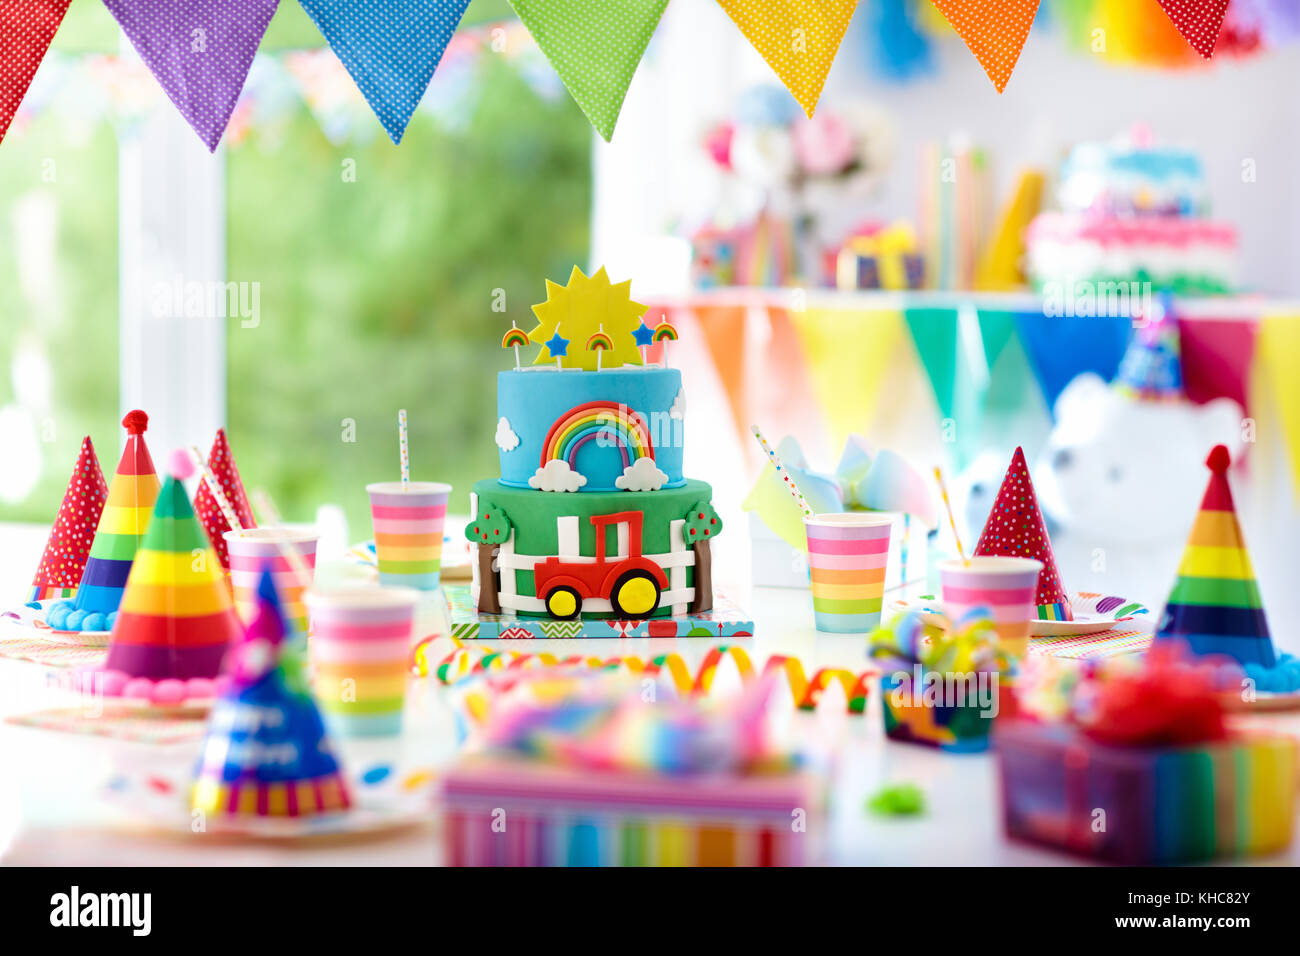 Kids Birthday Party Decoration Colorful Cake With Candles Farm And Stock Photo Alamy